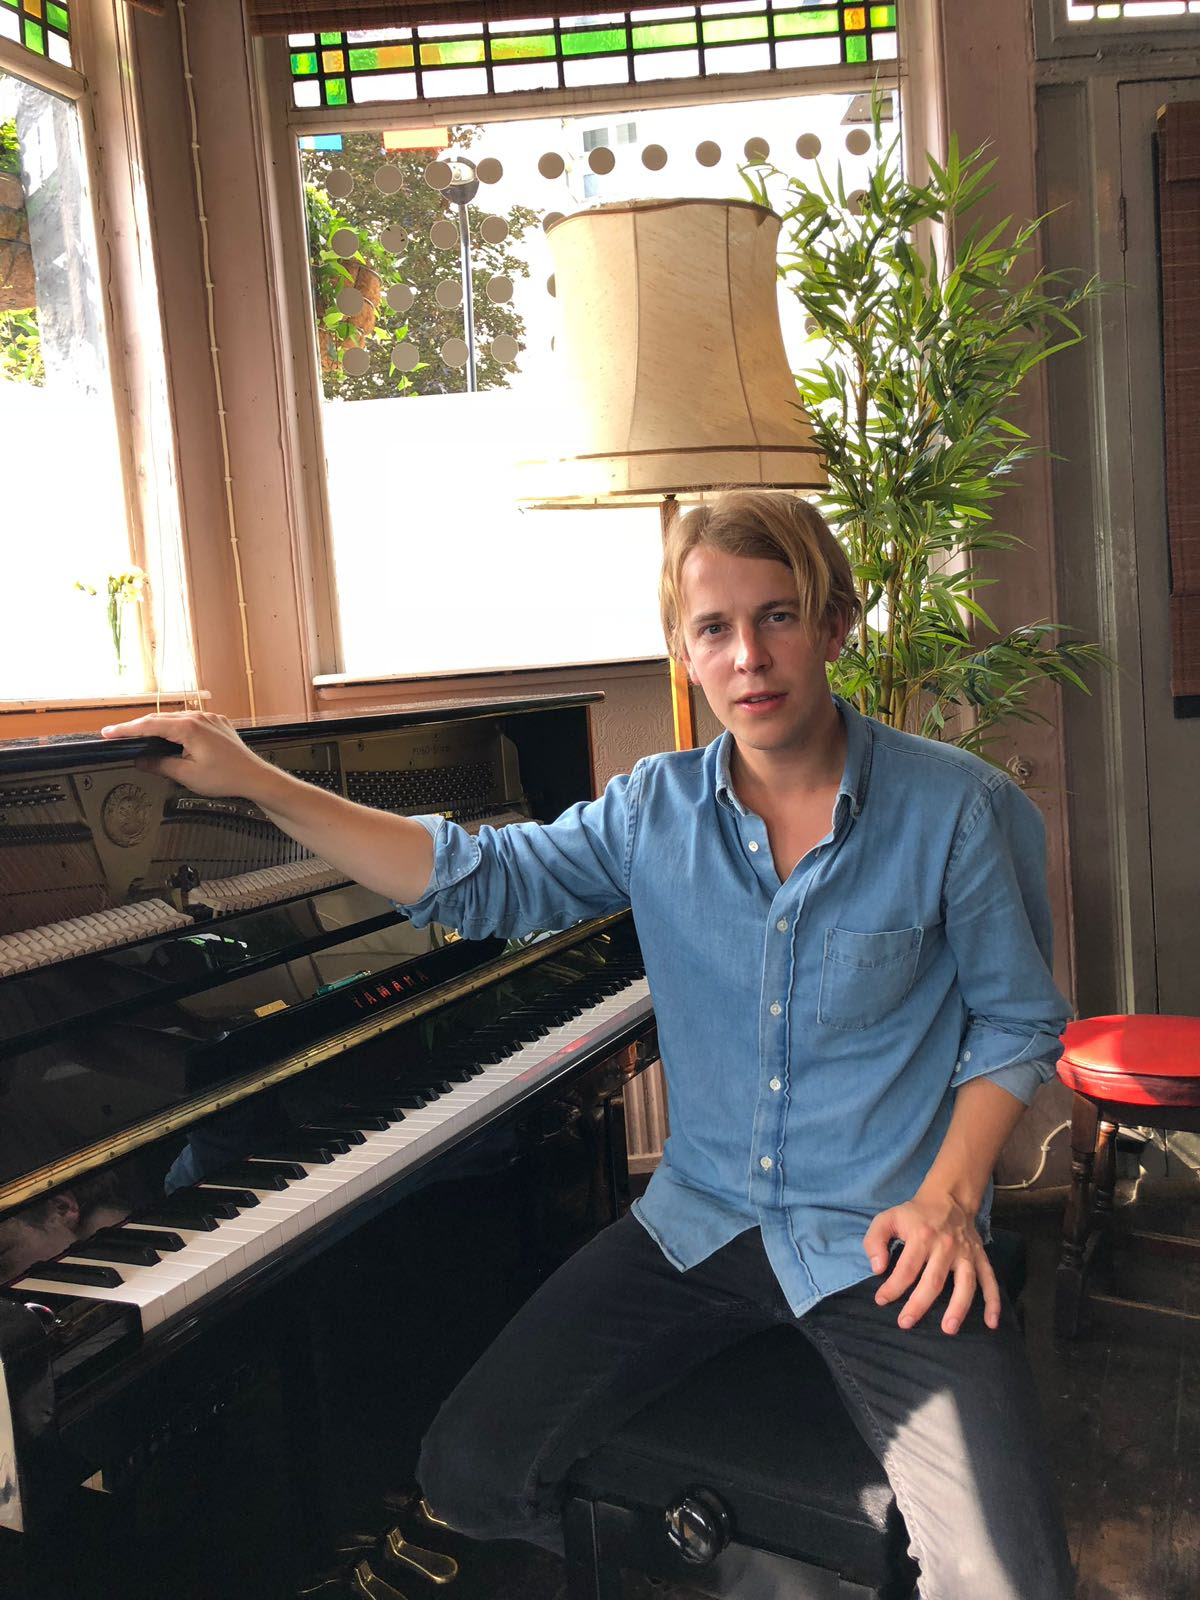 Tom Odell performs quotIf You Wanna Love Somebodyquot live at